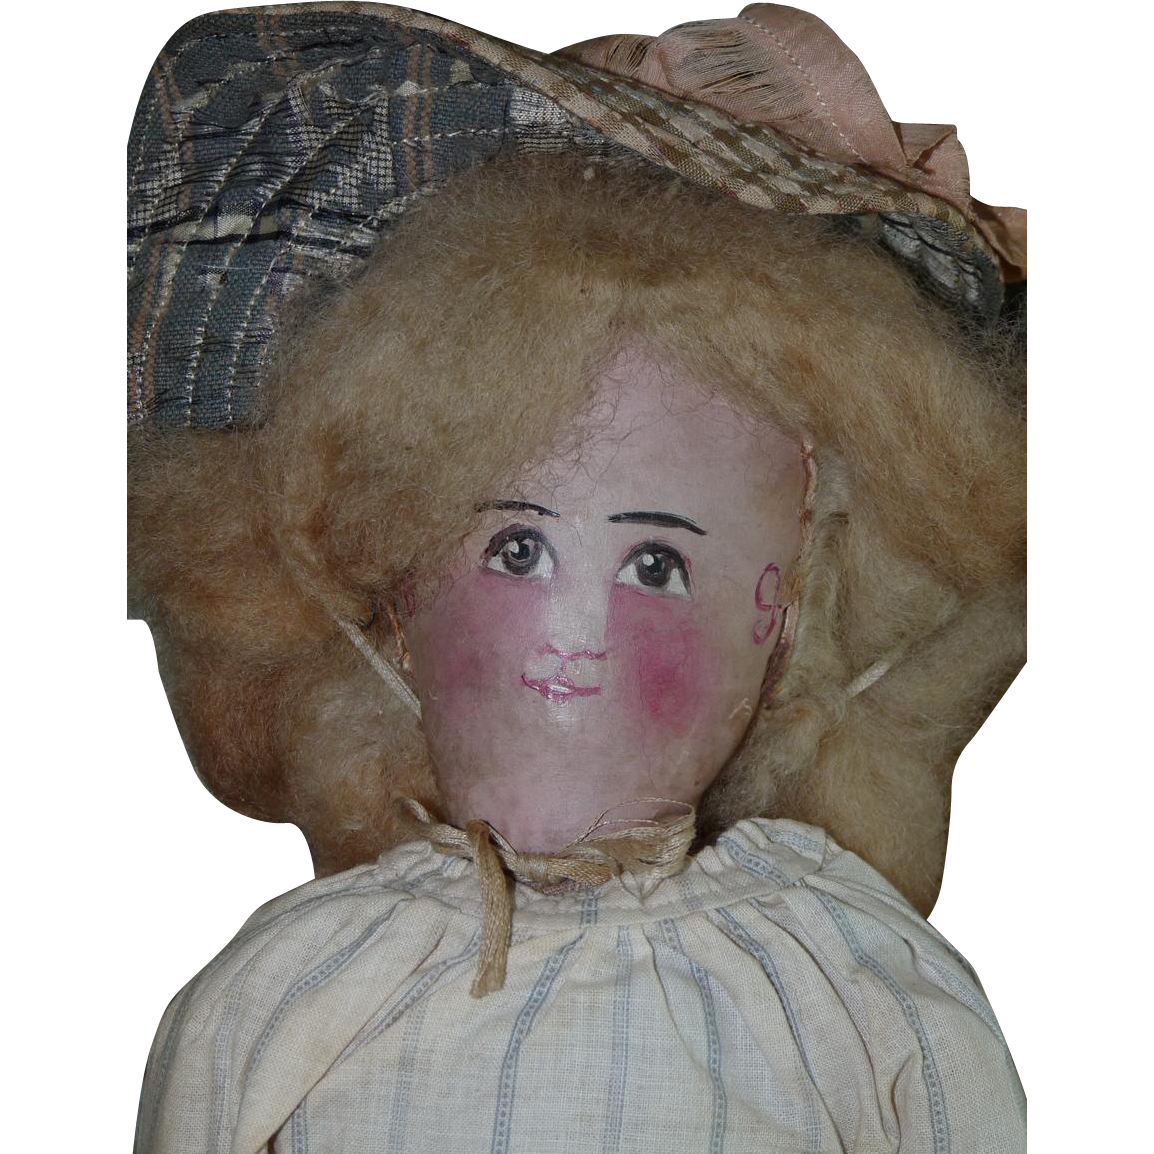 Sale! Antique All Original Cloth Oil Painted Face Doll